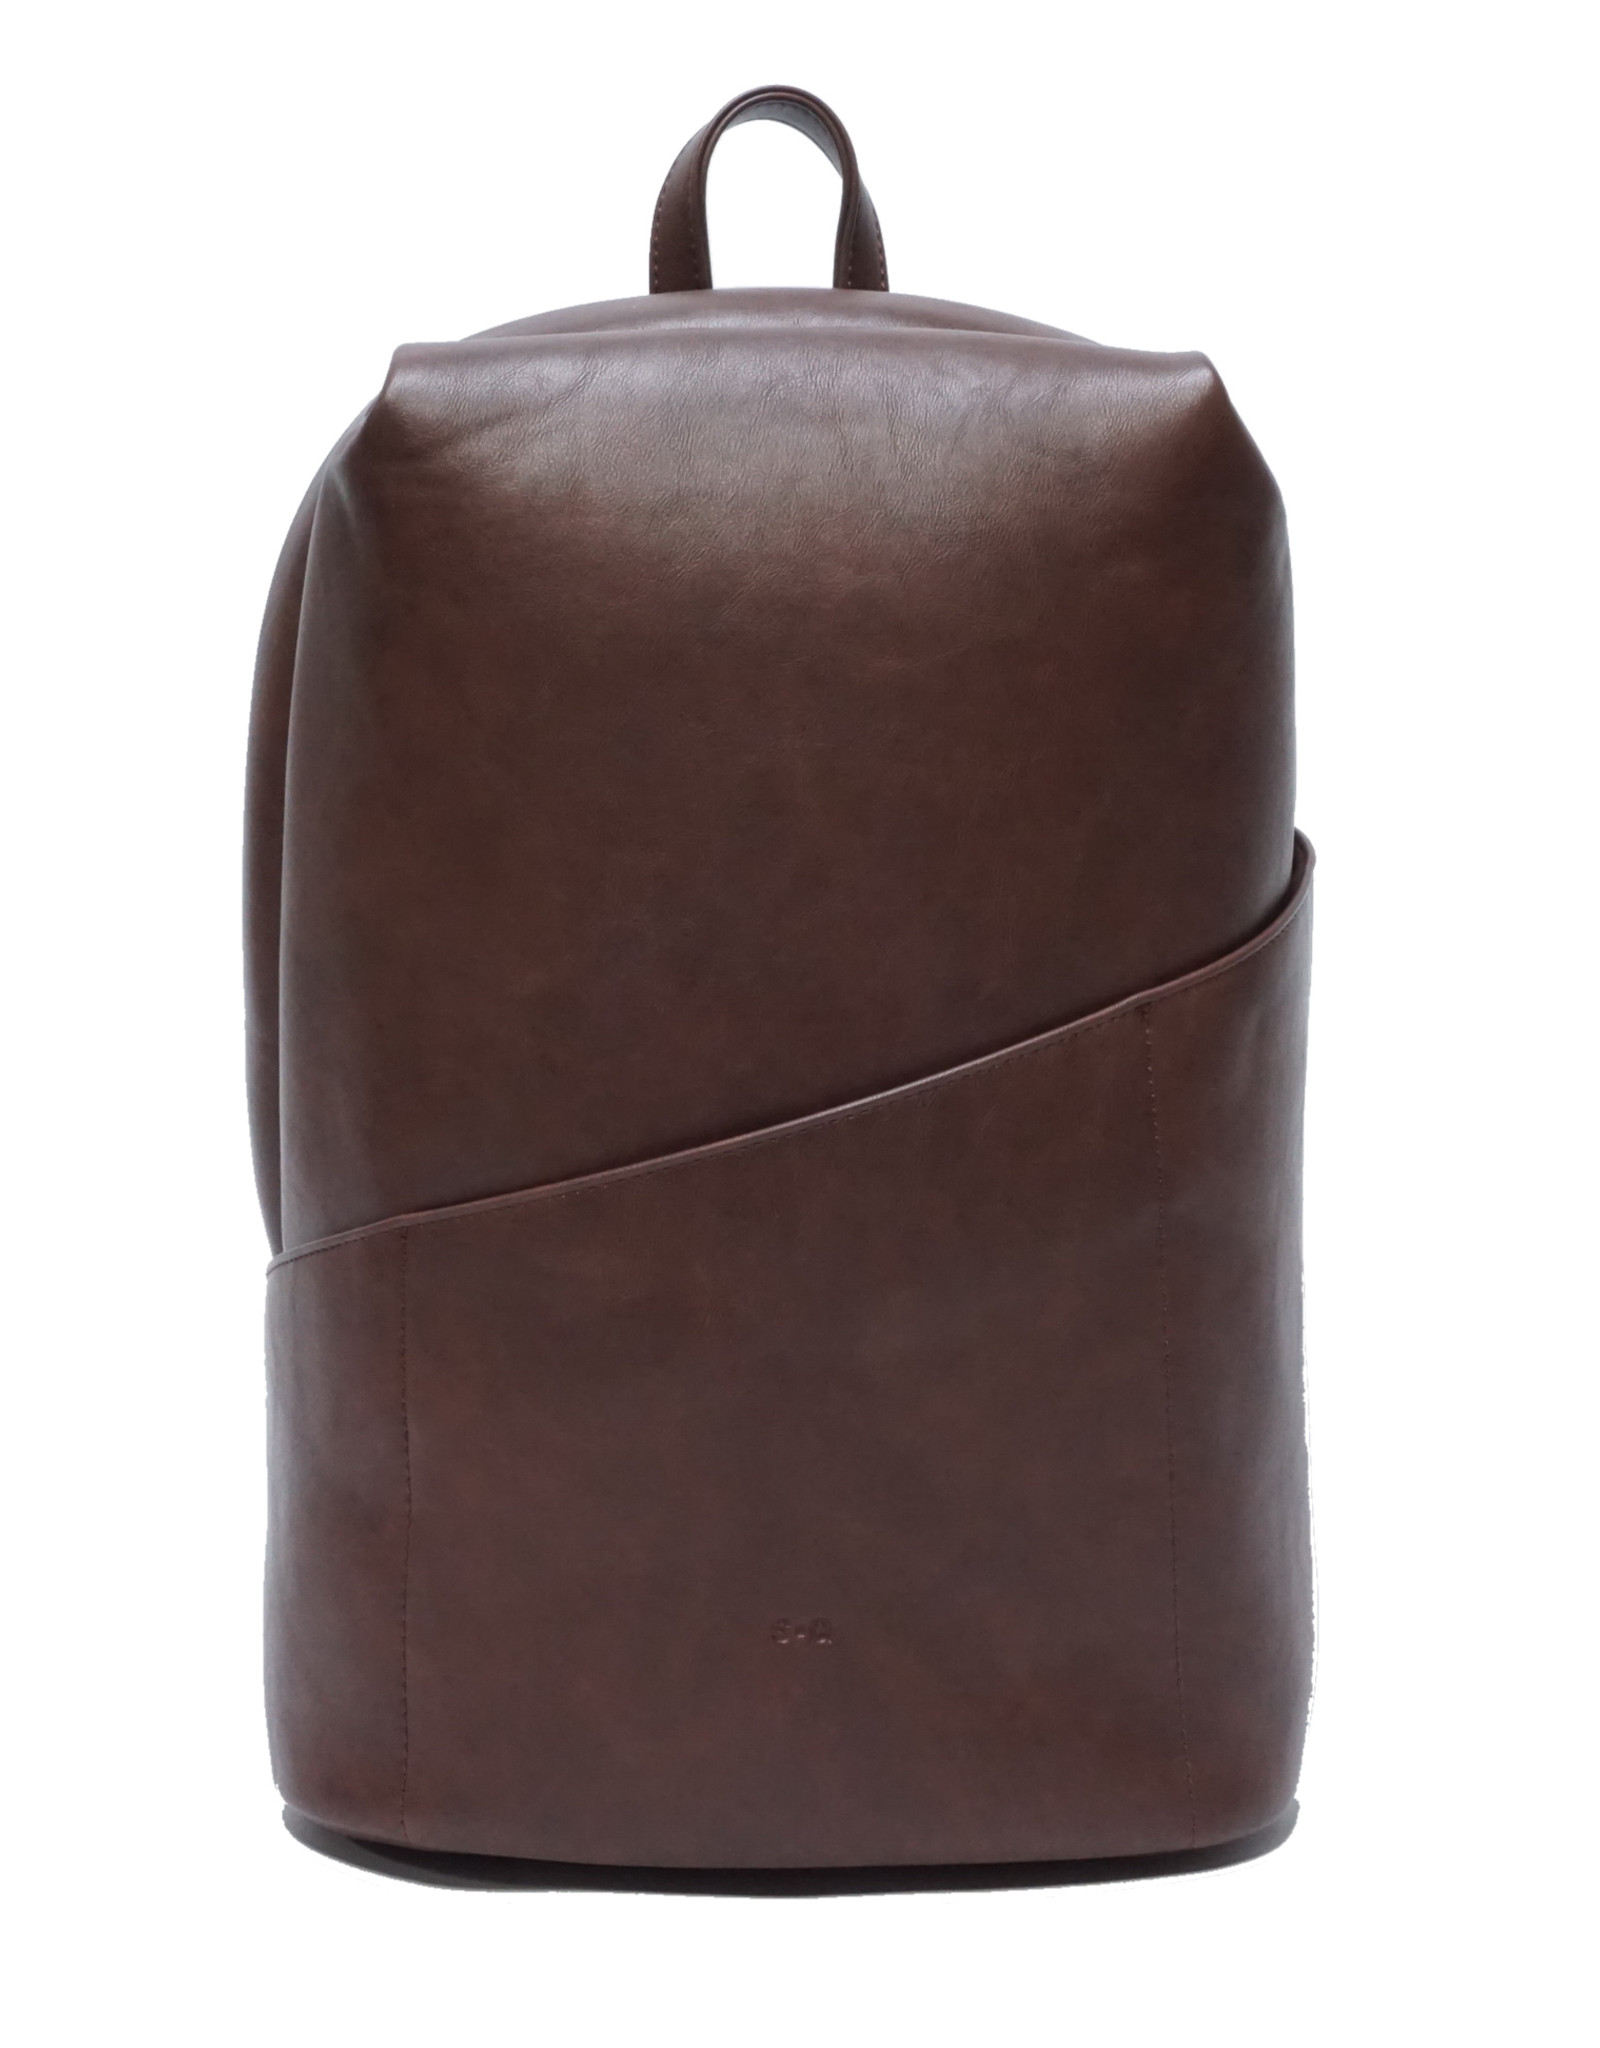 Hayden Travel Backpack-brown